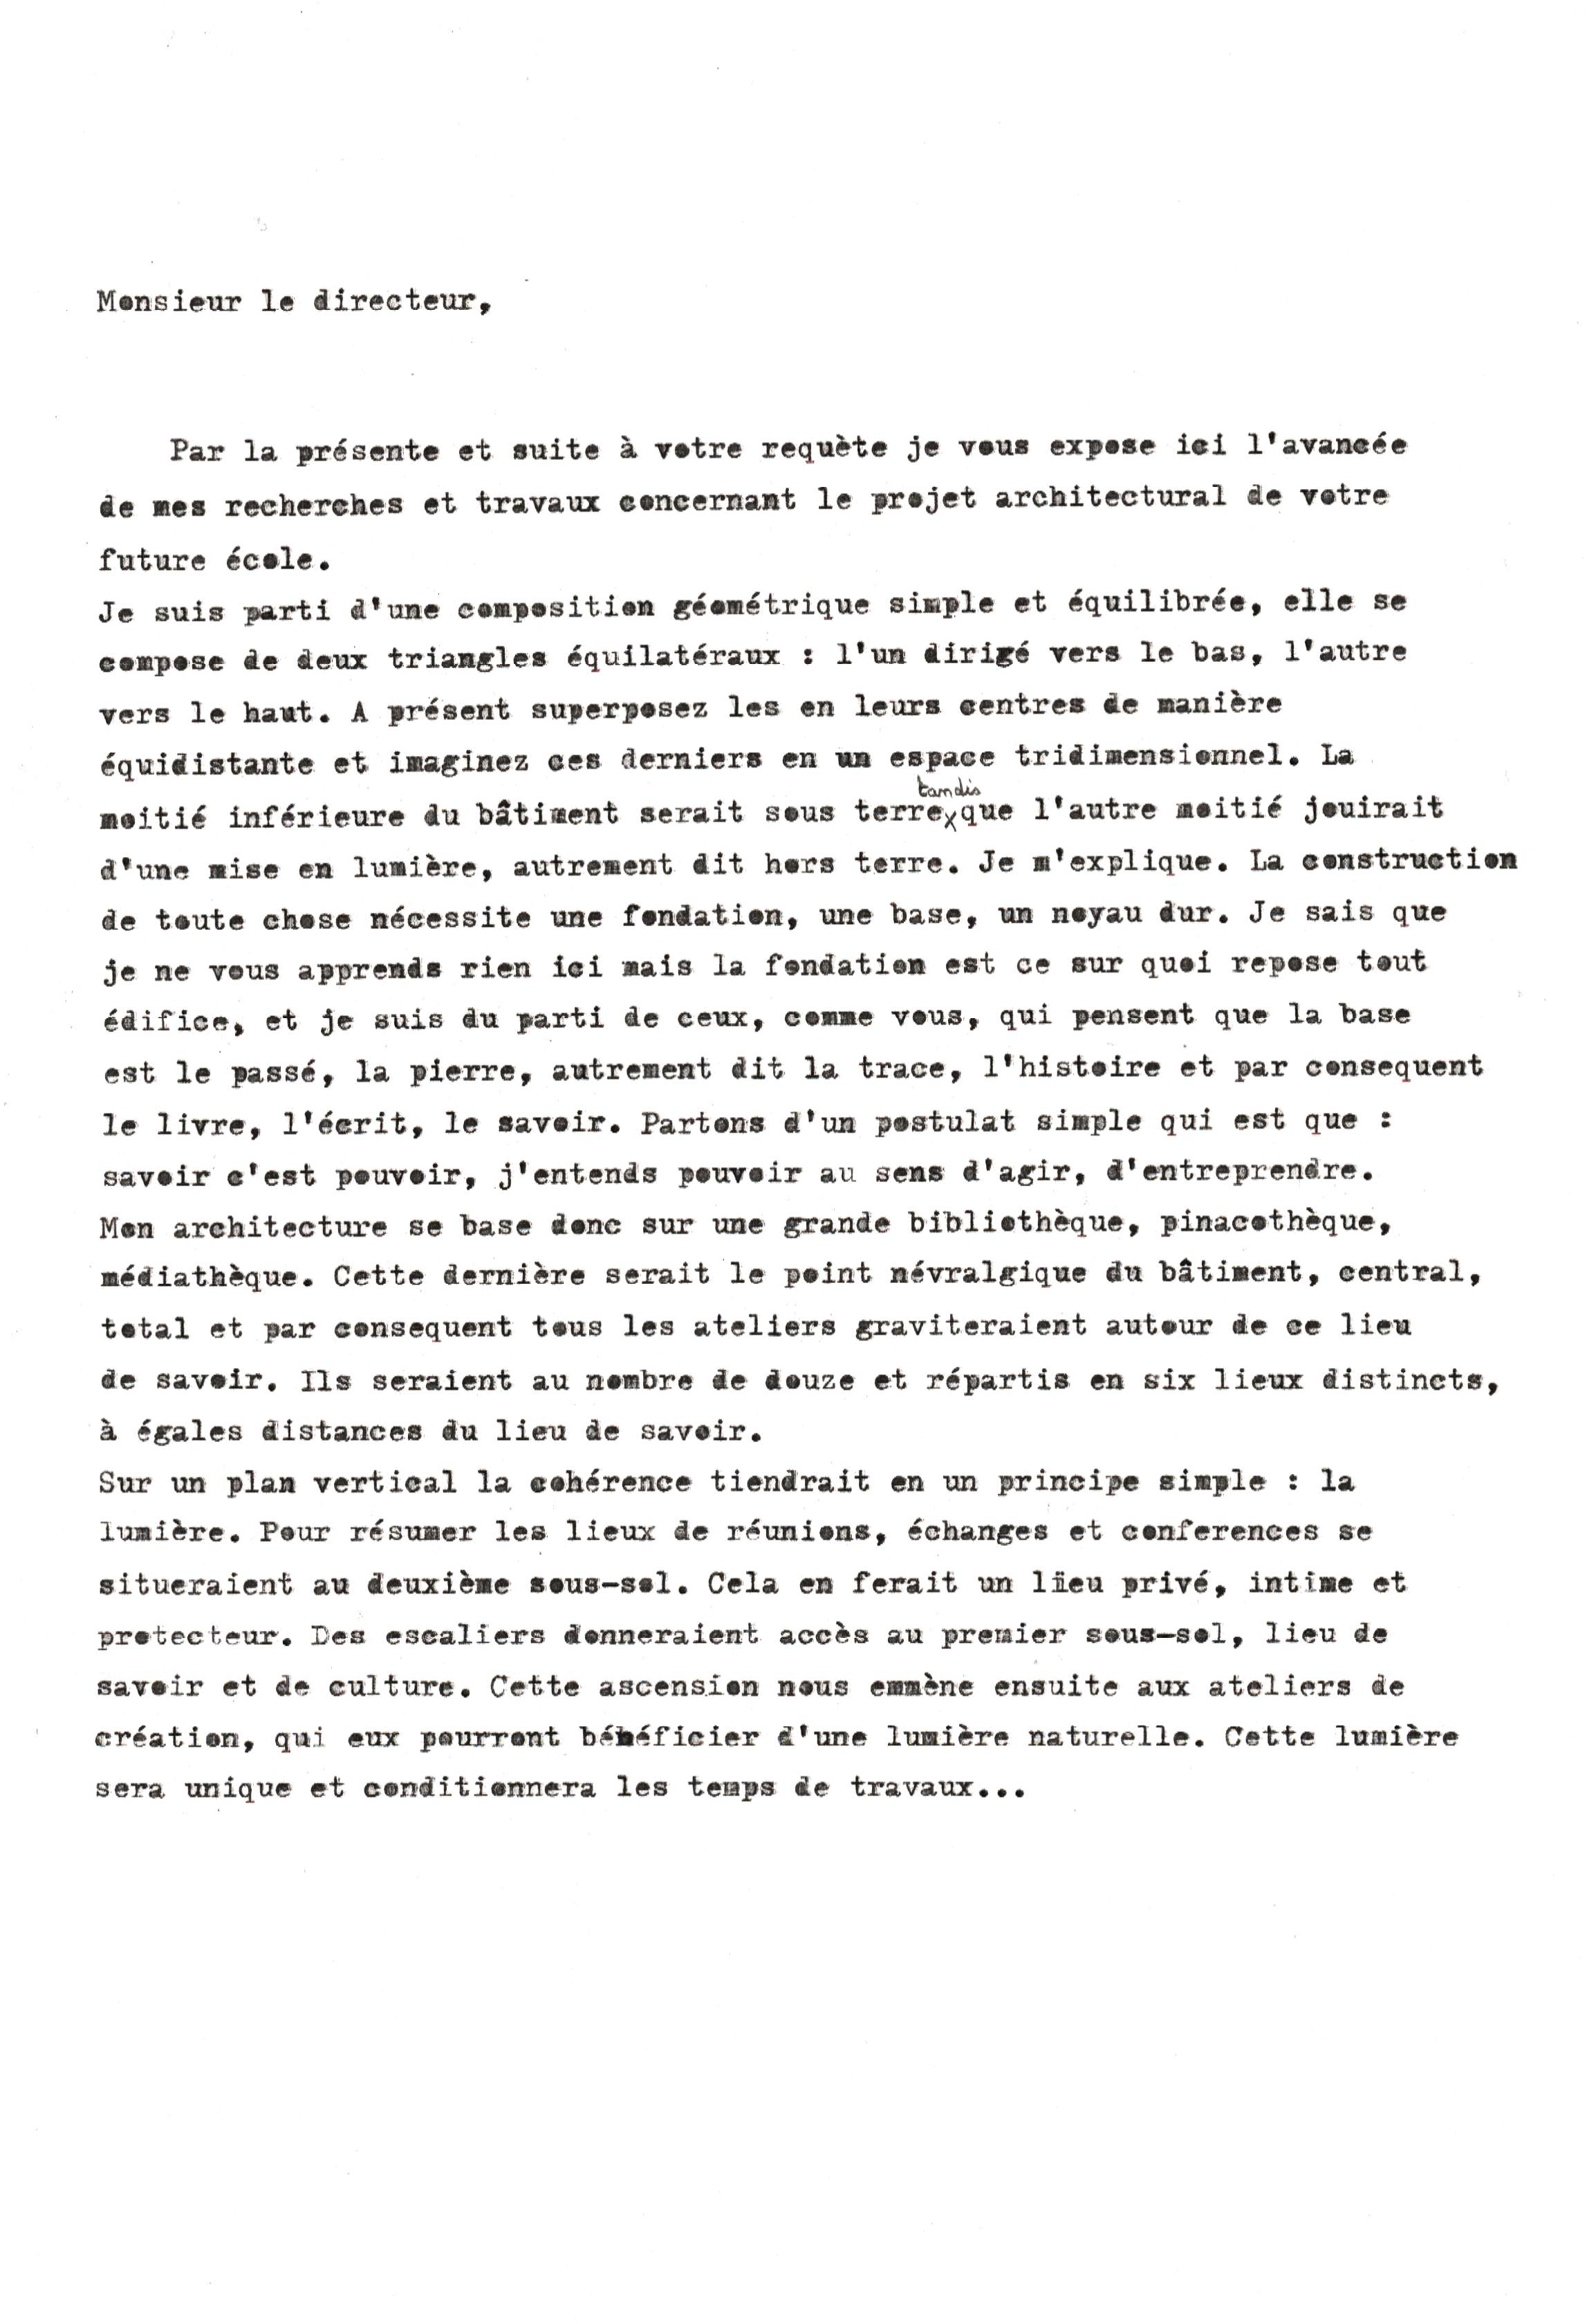 tamogami essay In an essay he wrote in 2008, tamogami asserted that japan was dragged into the second world war by chinese nationalist leader chiang kai-shek and us president franklin d roosevelt after his dismissal, tamogami allied himself with a number of nationalist groups before founding and chairing.